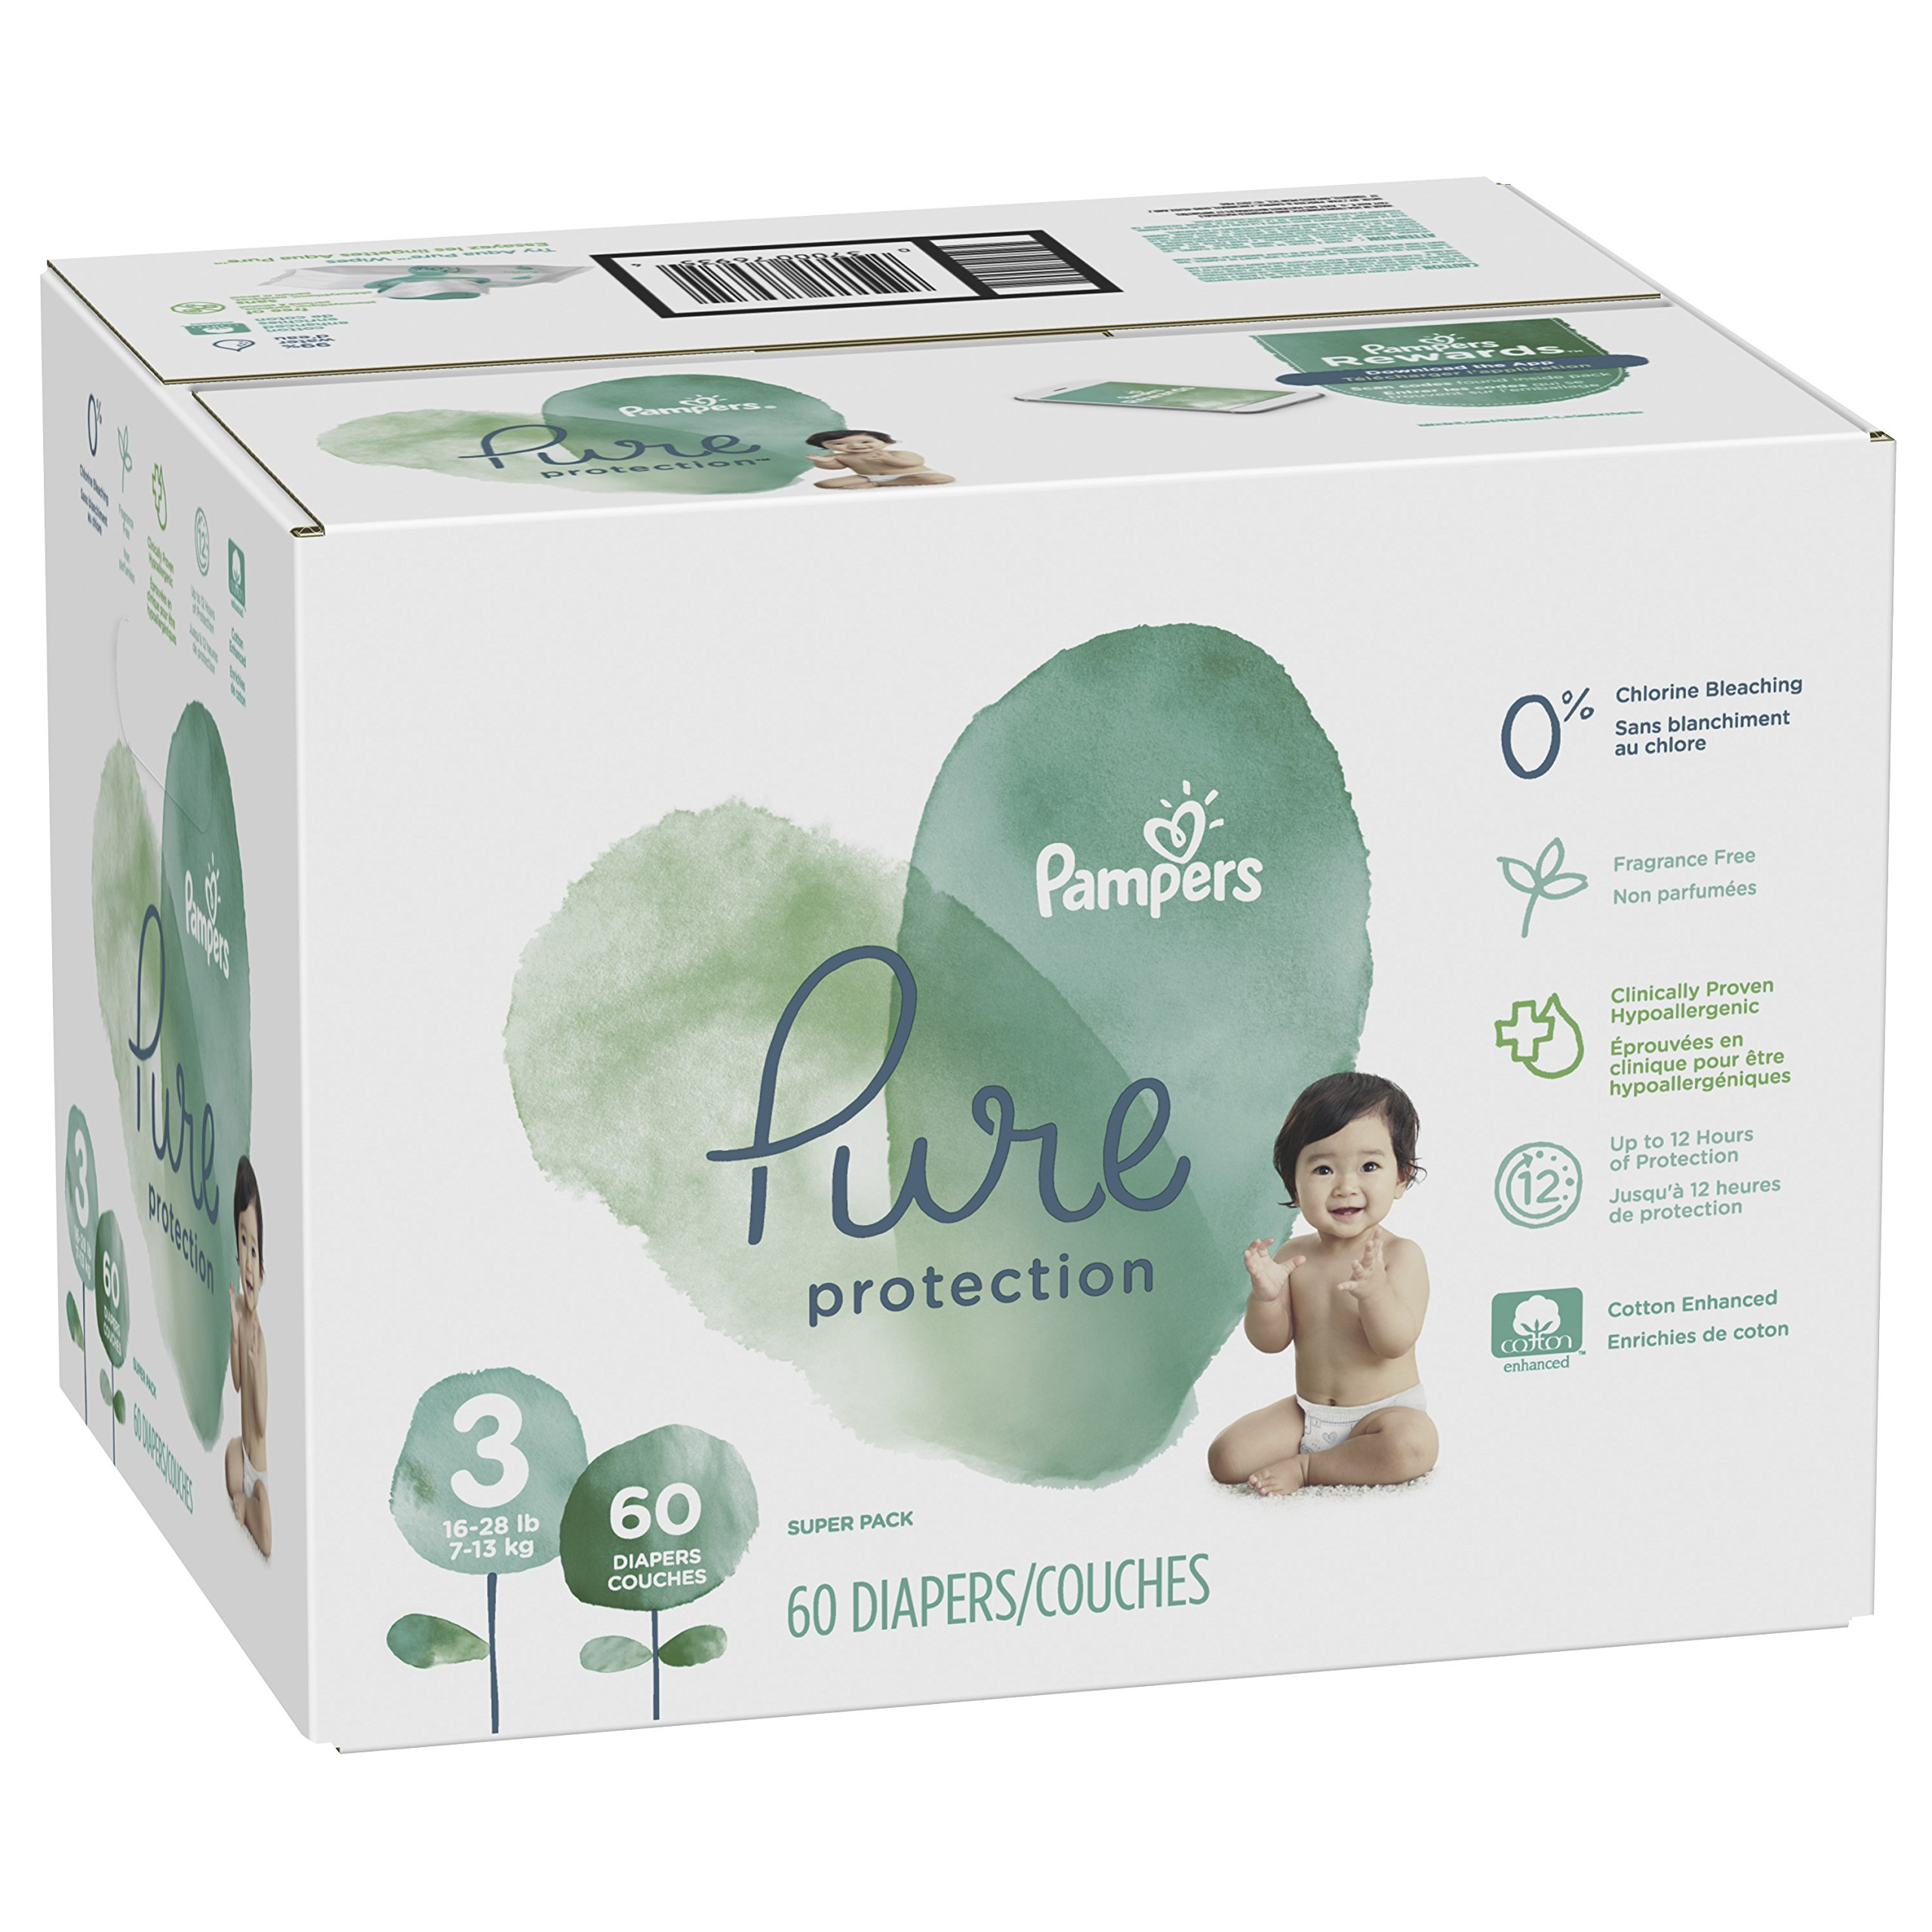 Pampers Pure Protection Disposable Diapers, Size 3, 60 Count